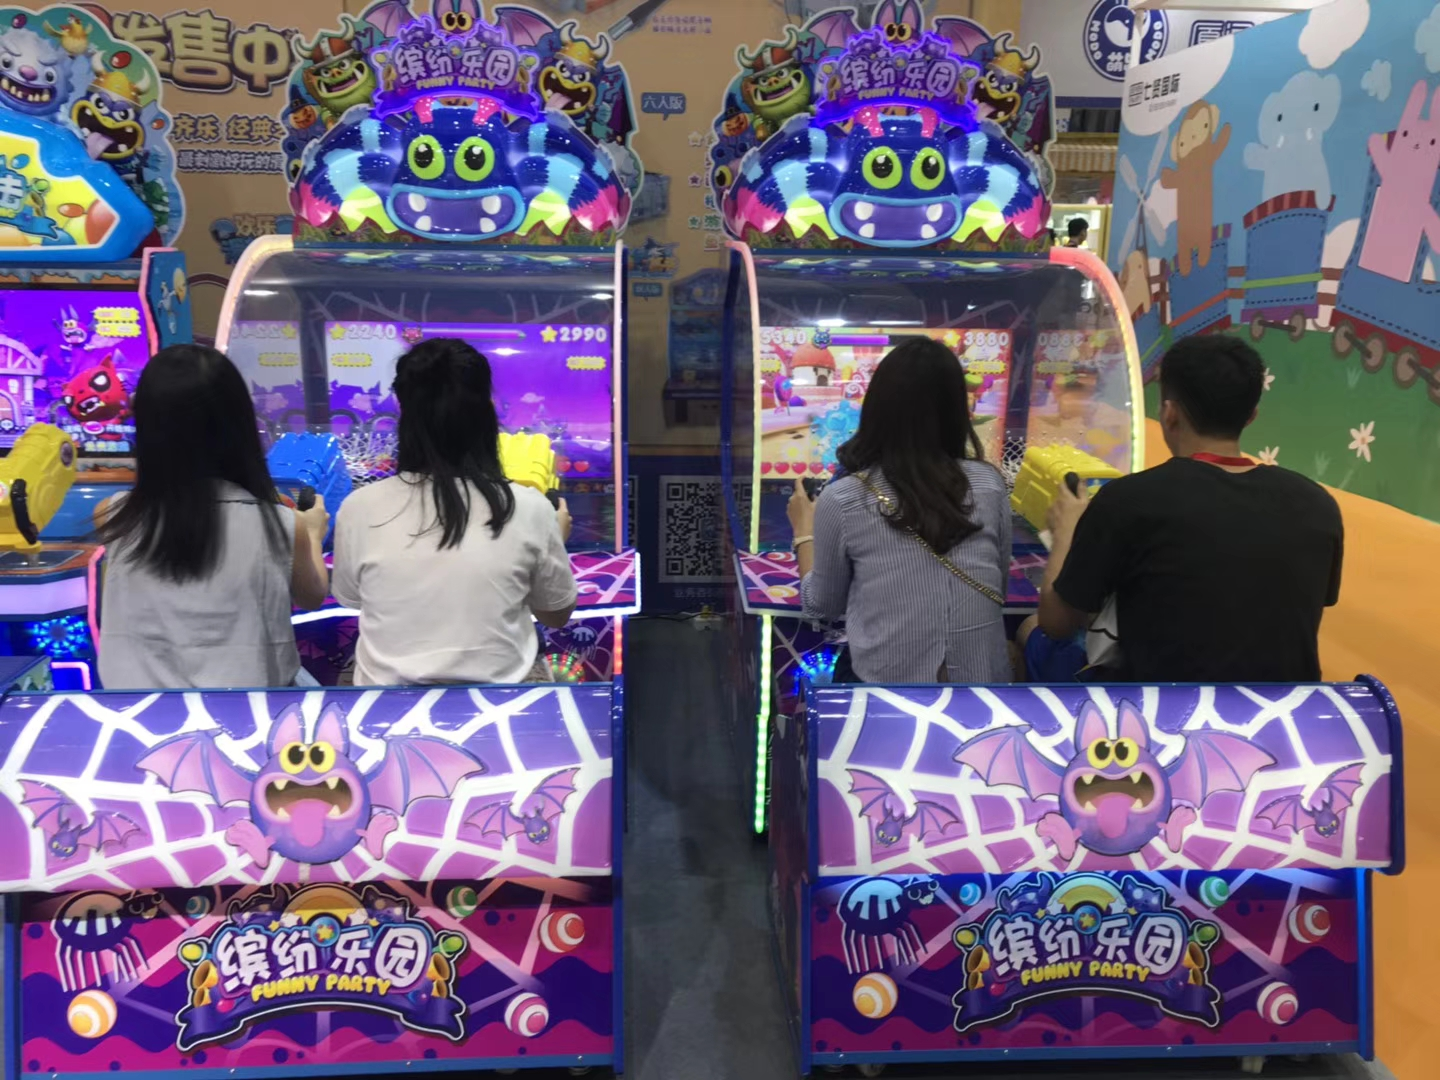 Funny Partyr Ball Shooting Game Machine